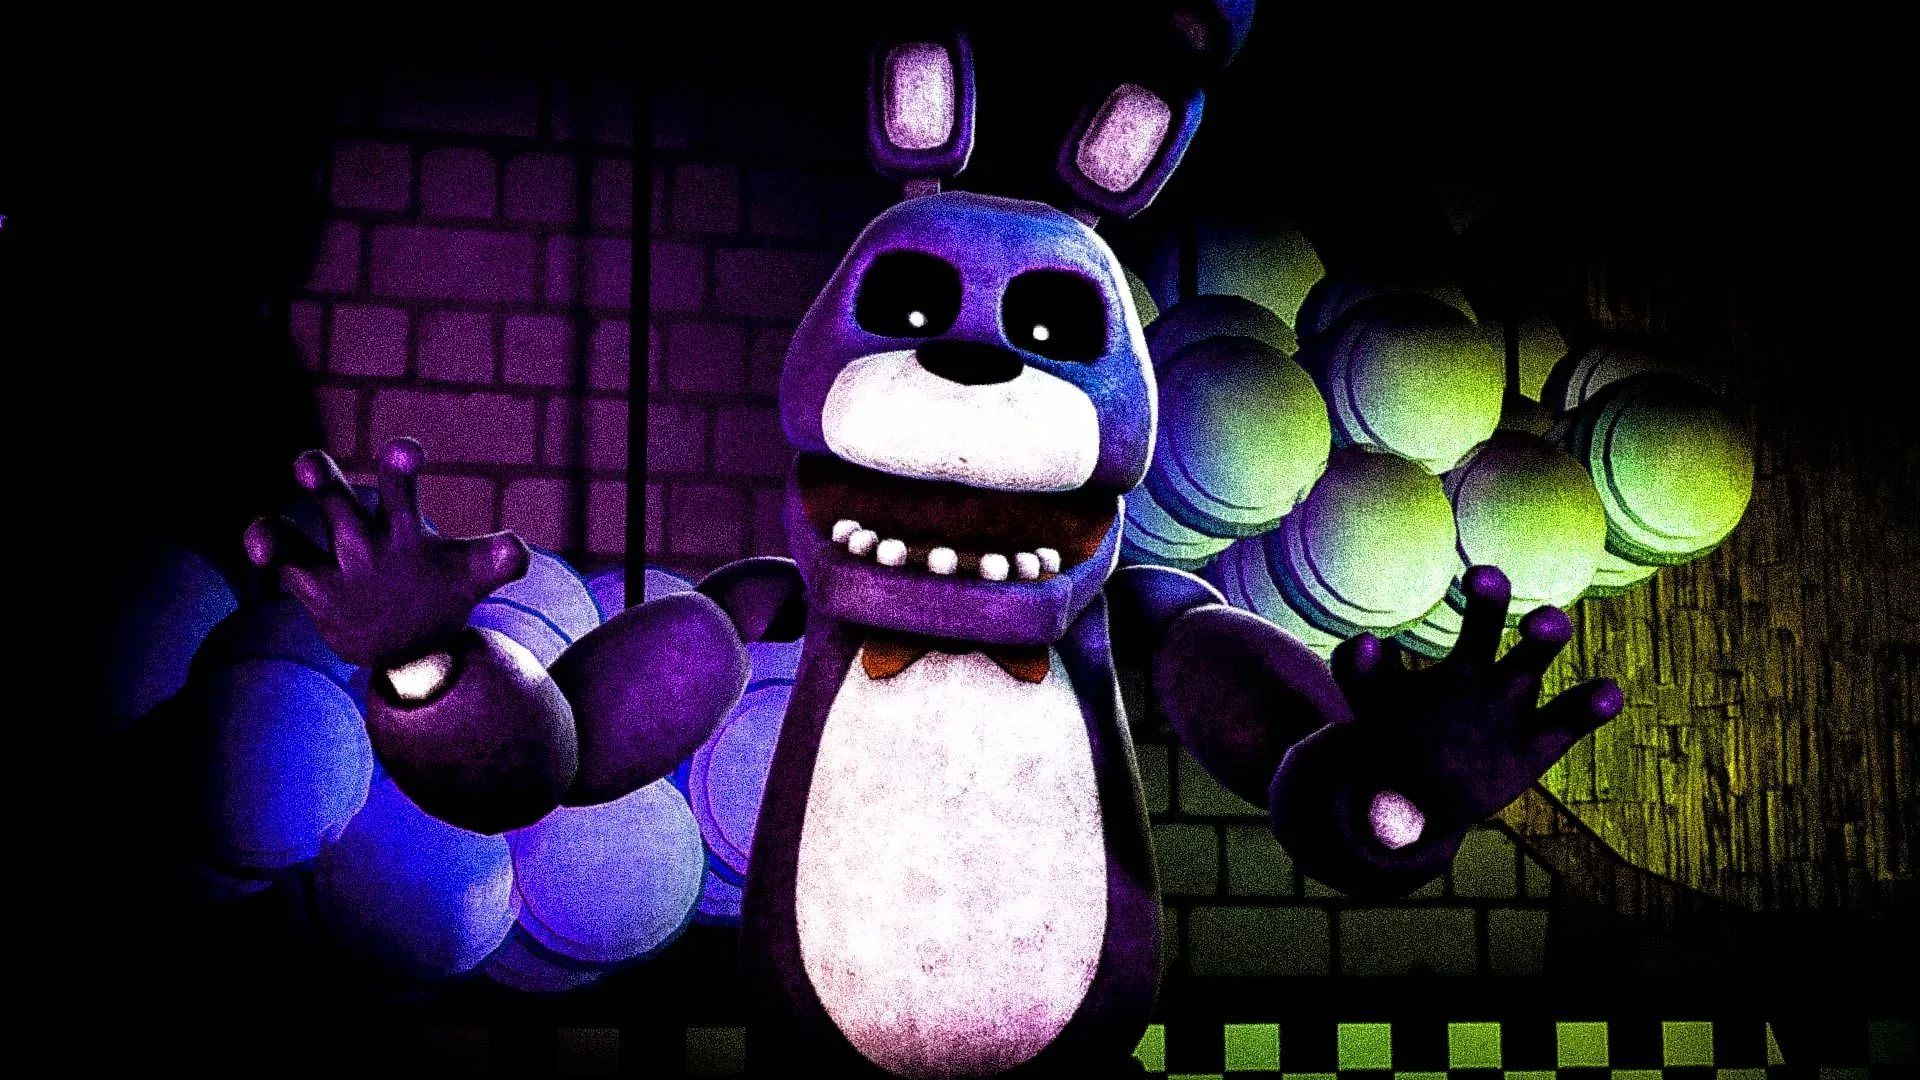 FNAF Bonnie wallpaper image